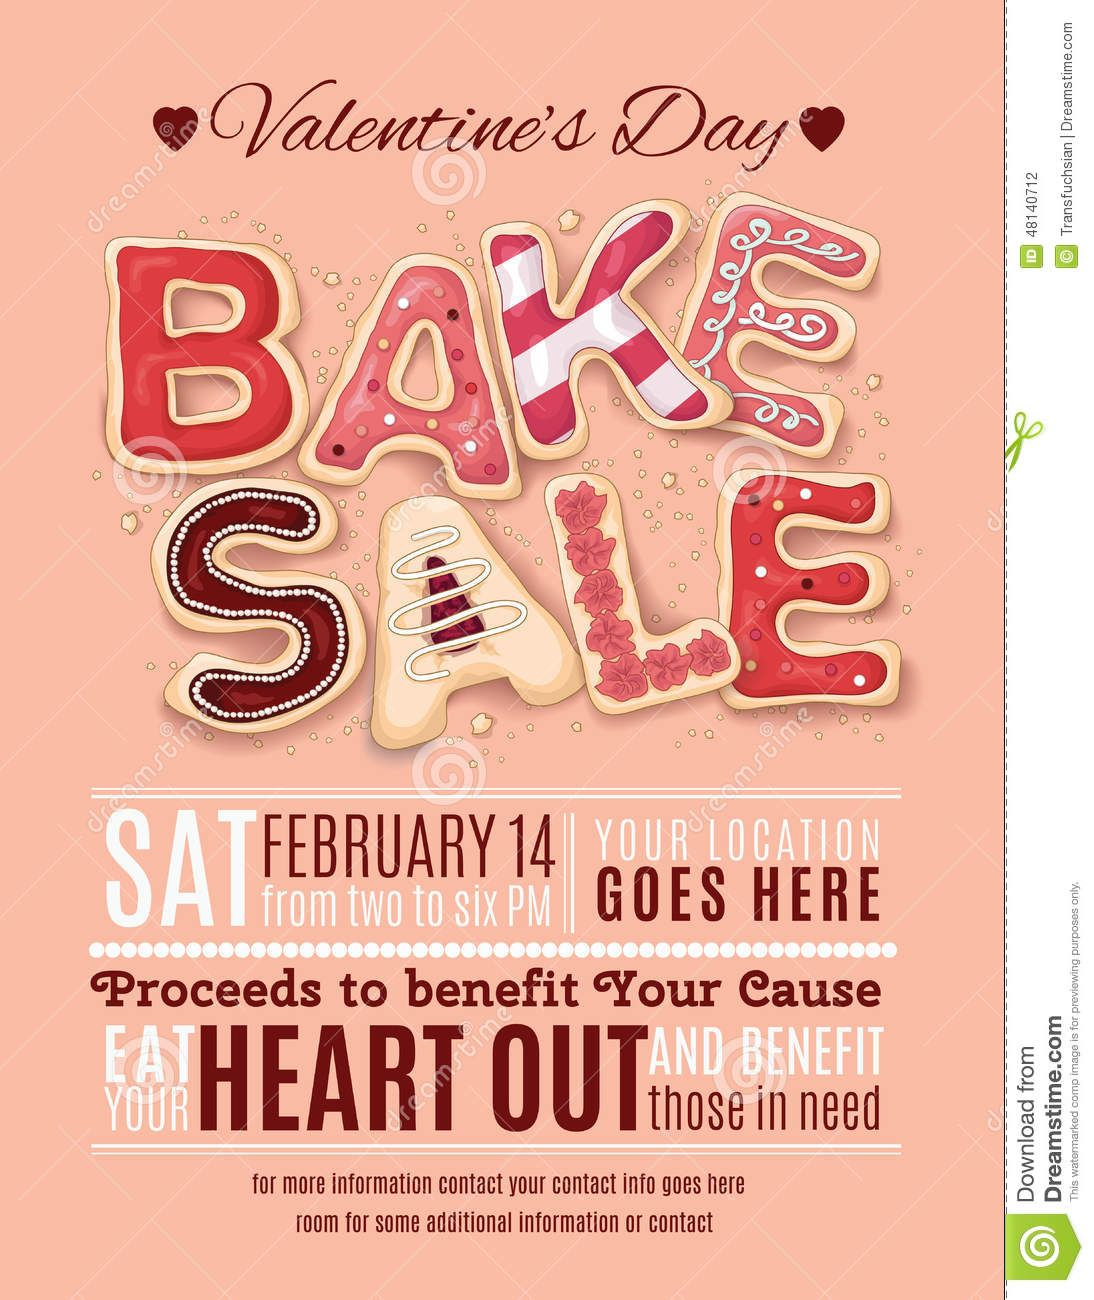 Valentines Day Bake Sale Flyer Template  Download From Over 46 Million High Quality Stock